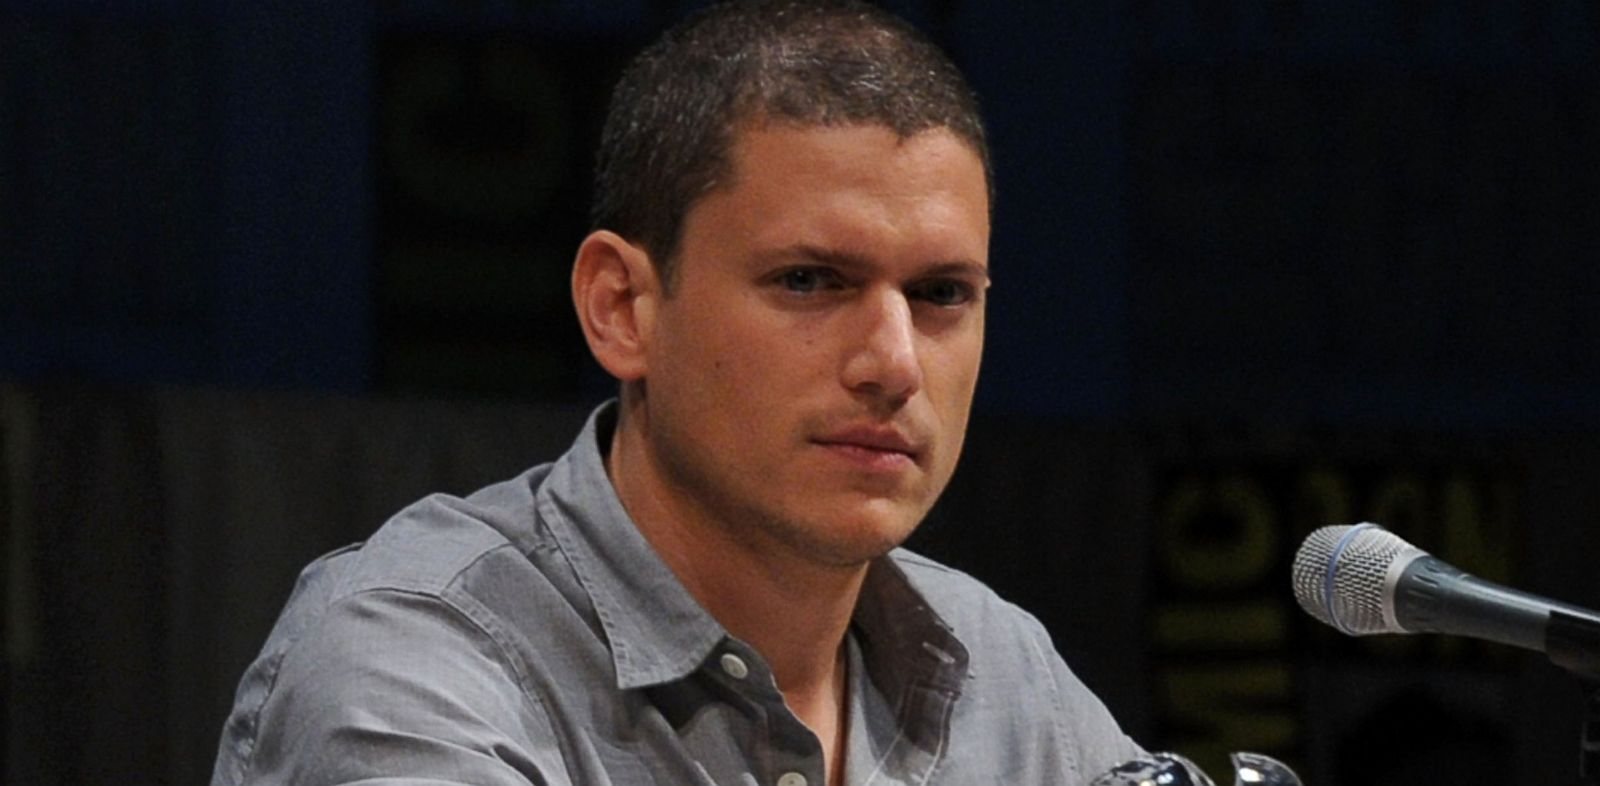 PHOTO: Wentworth Miller Opens Up About Suicide Attempt